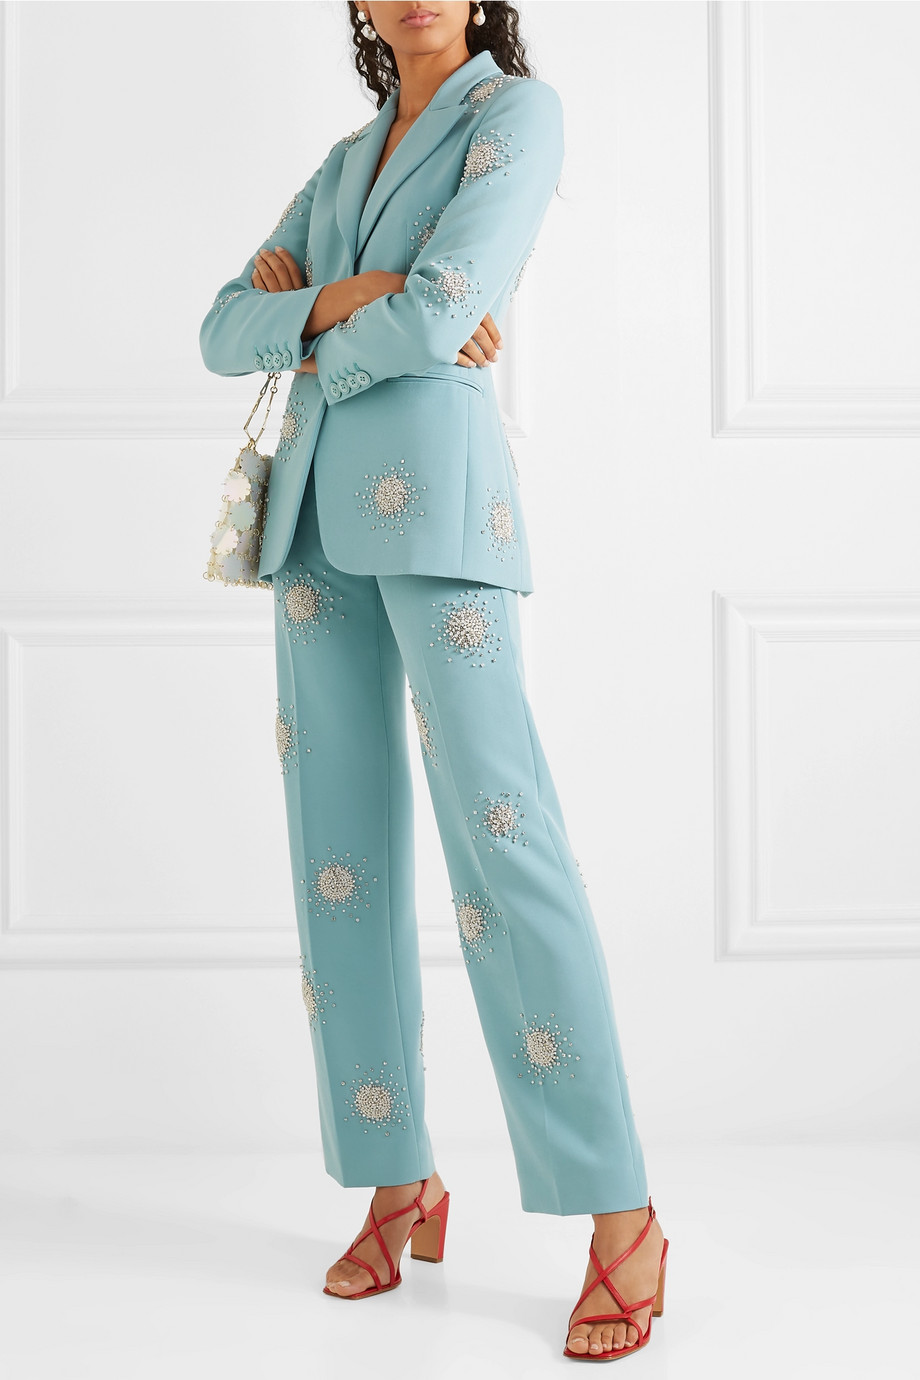 Modetrends 2019: The Power Suit by Stine Goya - Love Daily Dose